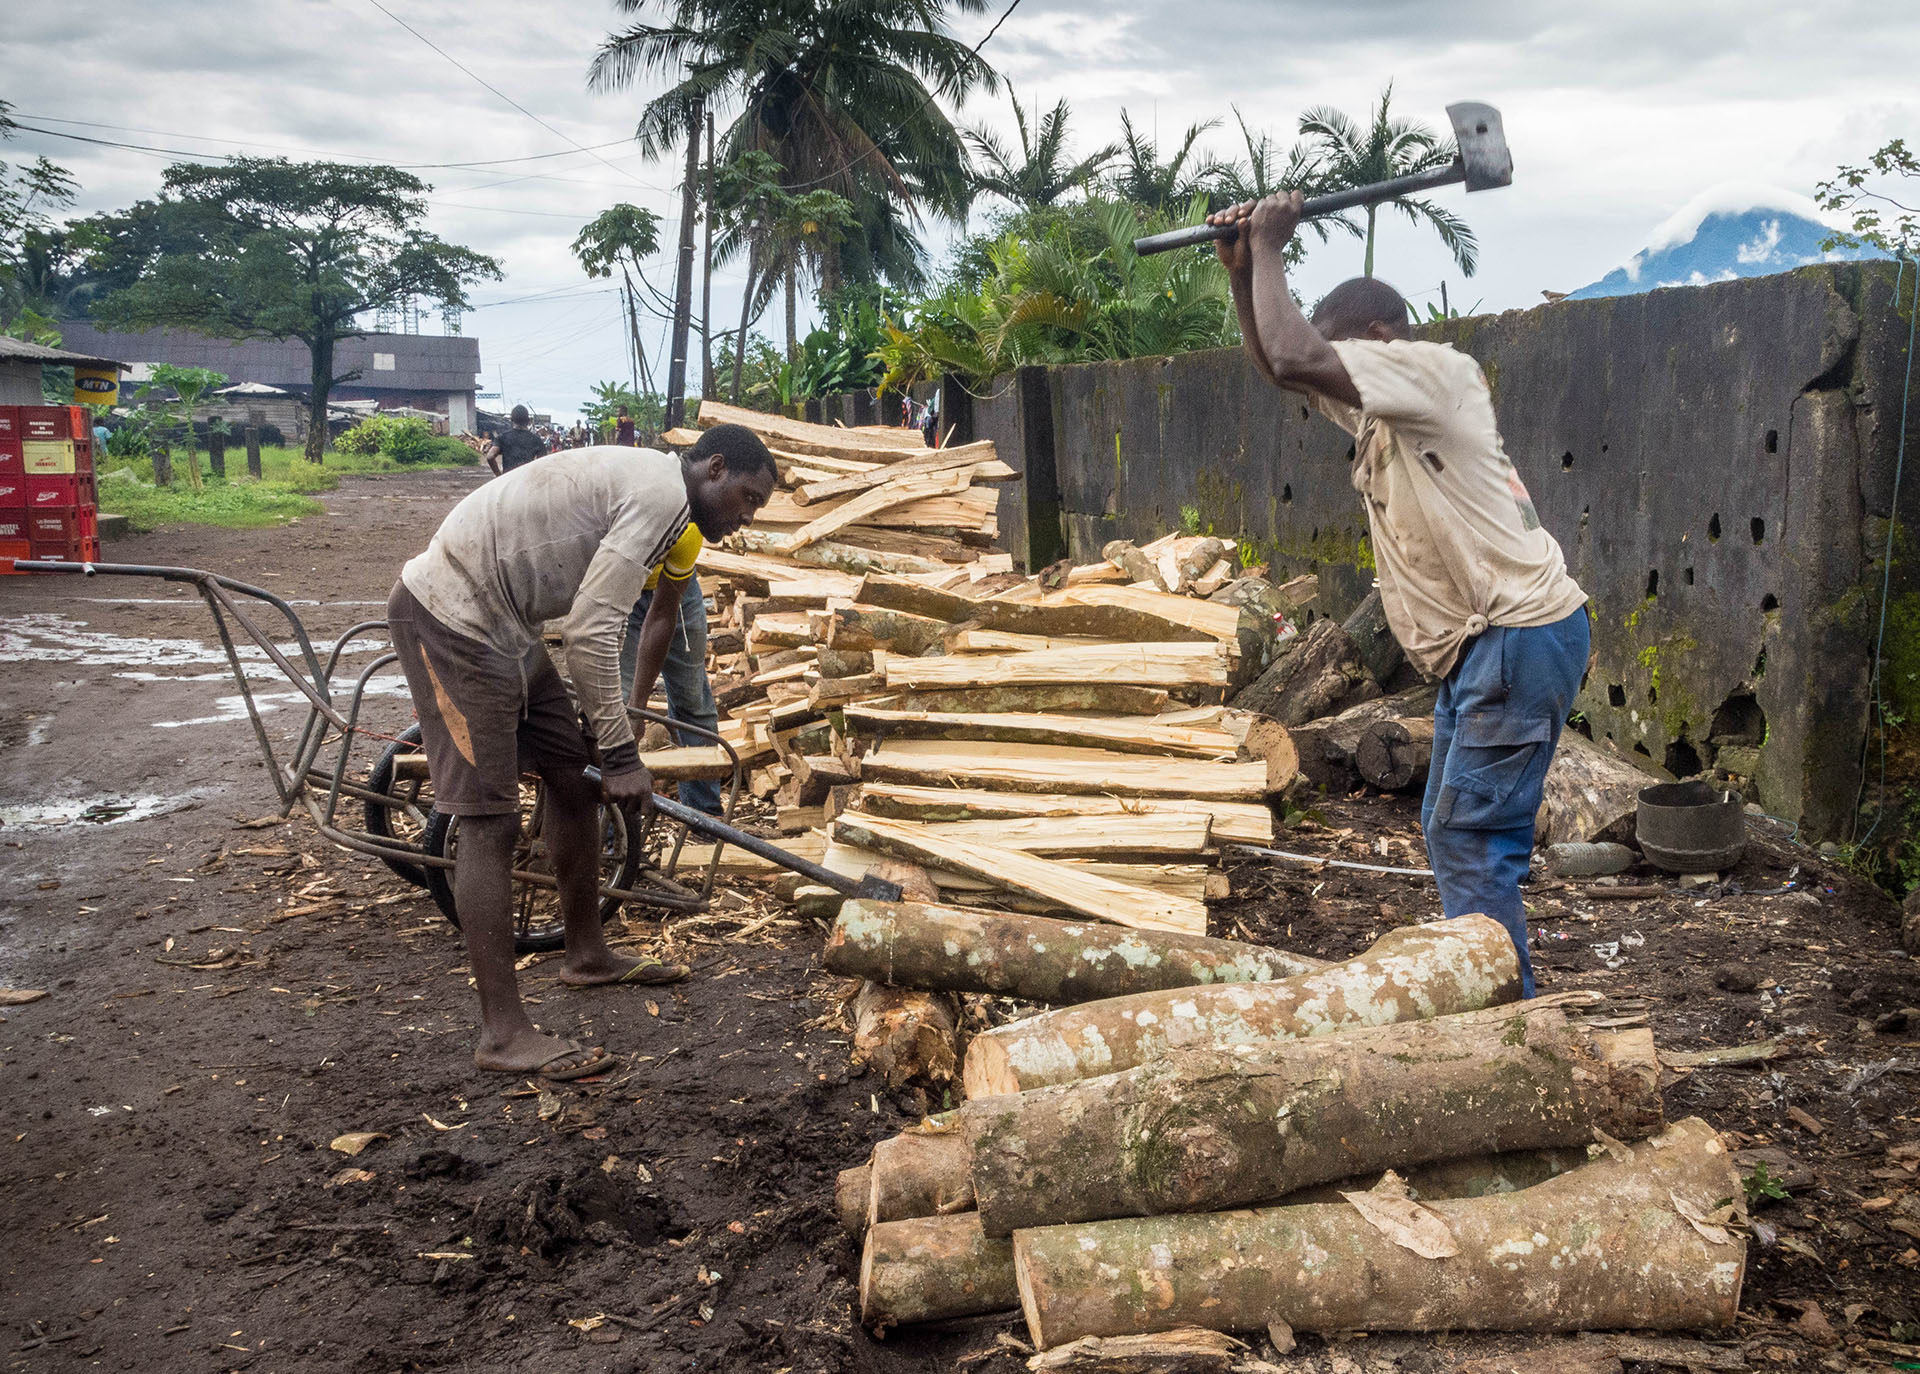 Only 30-40% of wood fuel is harvested renewably, and solid fuels do not provide for clean cooking